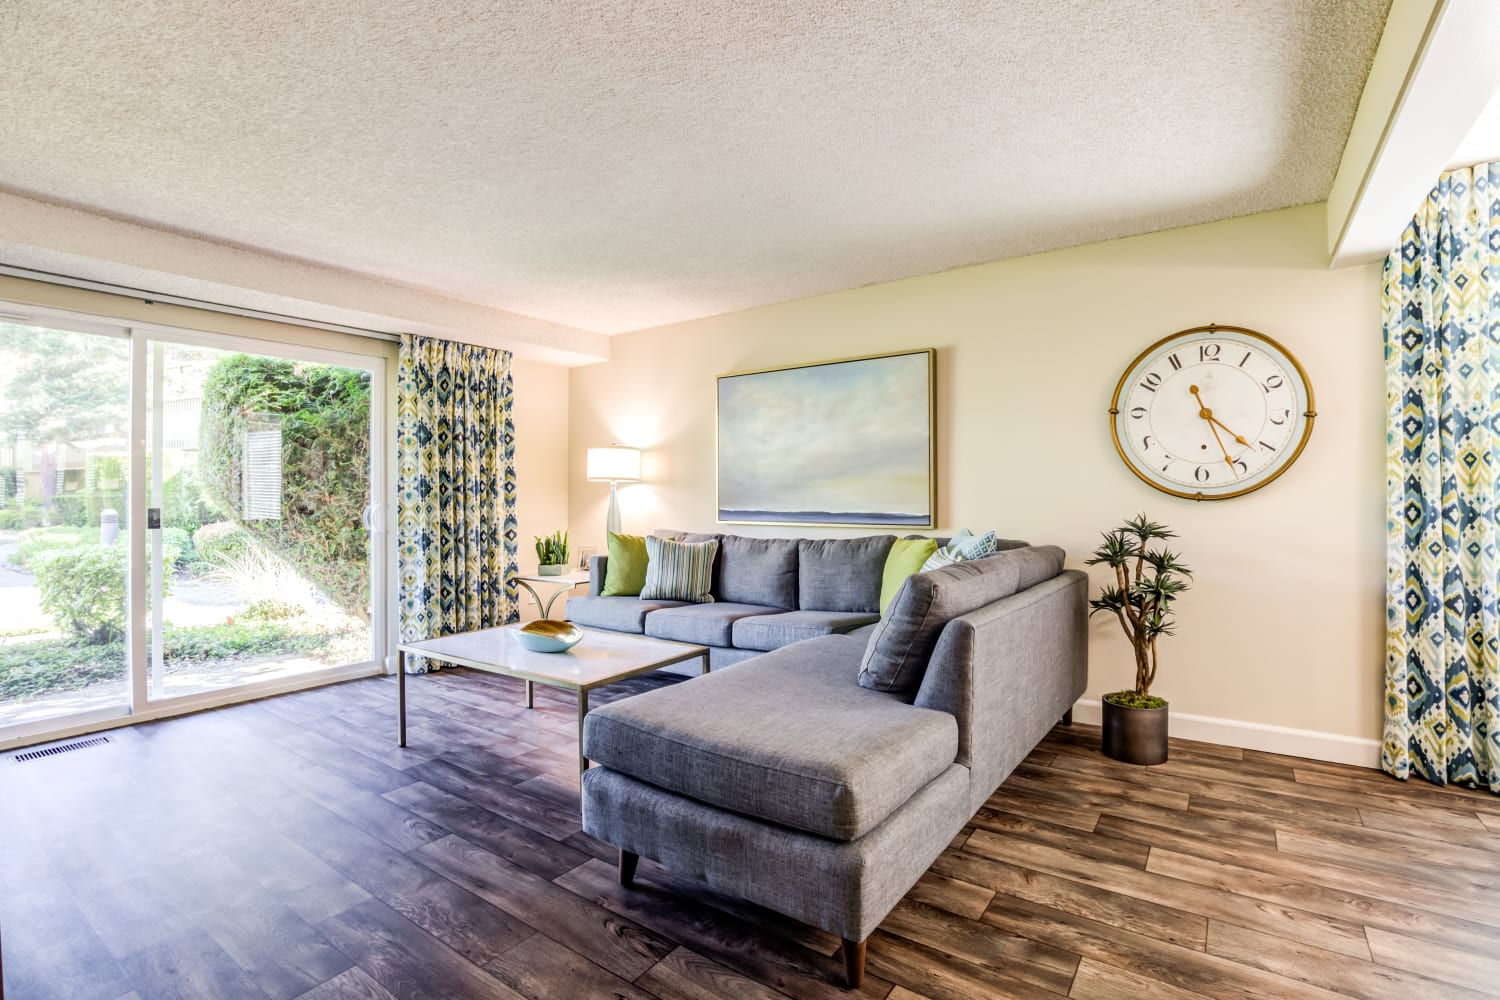 Spacious living room at Edgewood Park Apartments in Bellevue, Washington